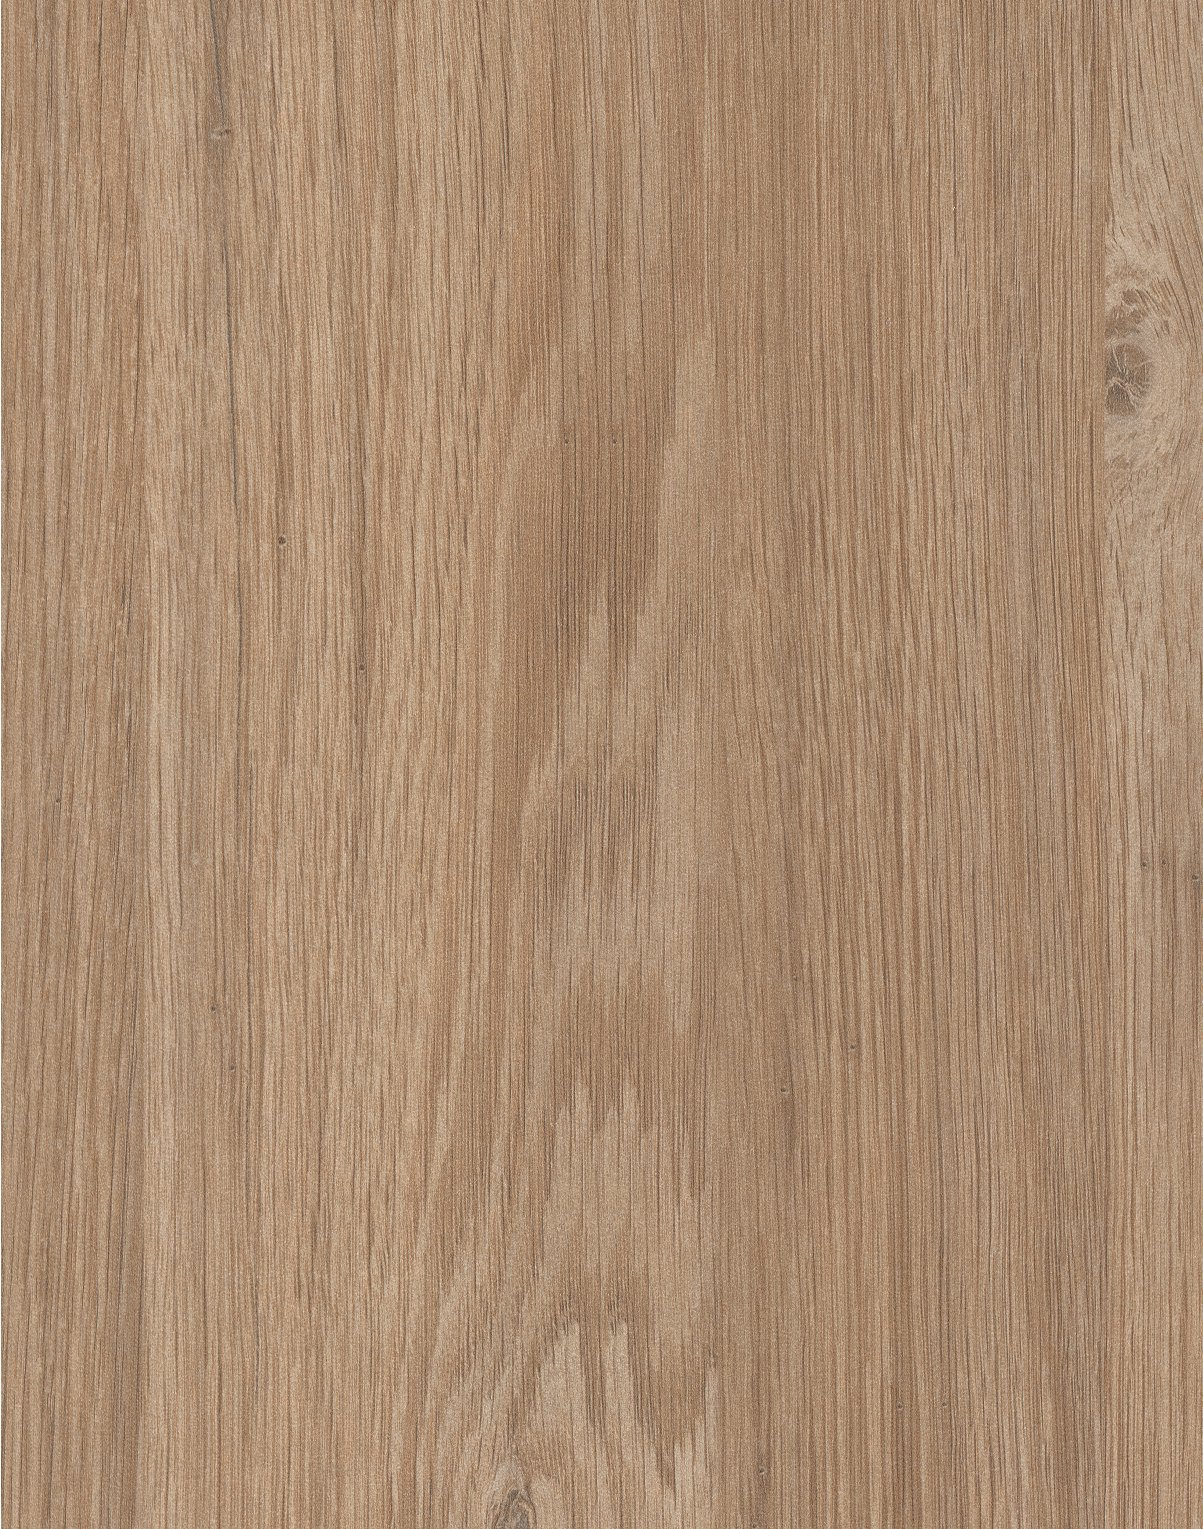 The decor barrique oak light is a natural with